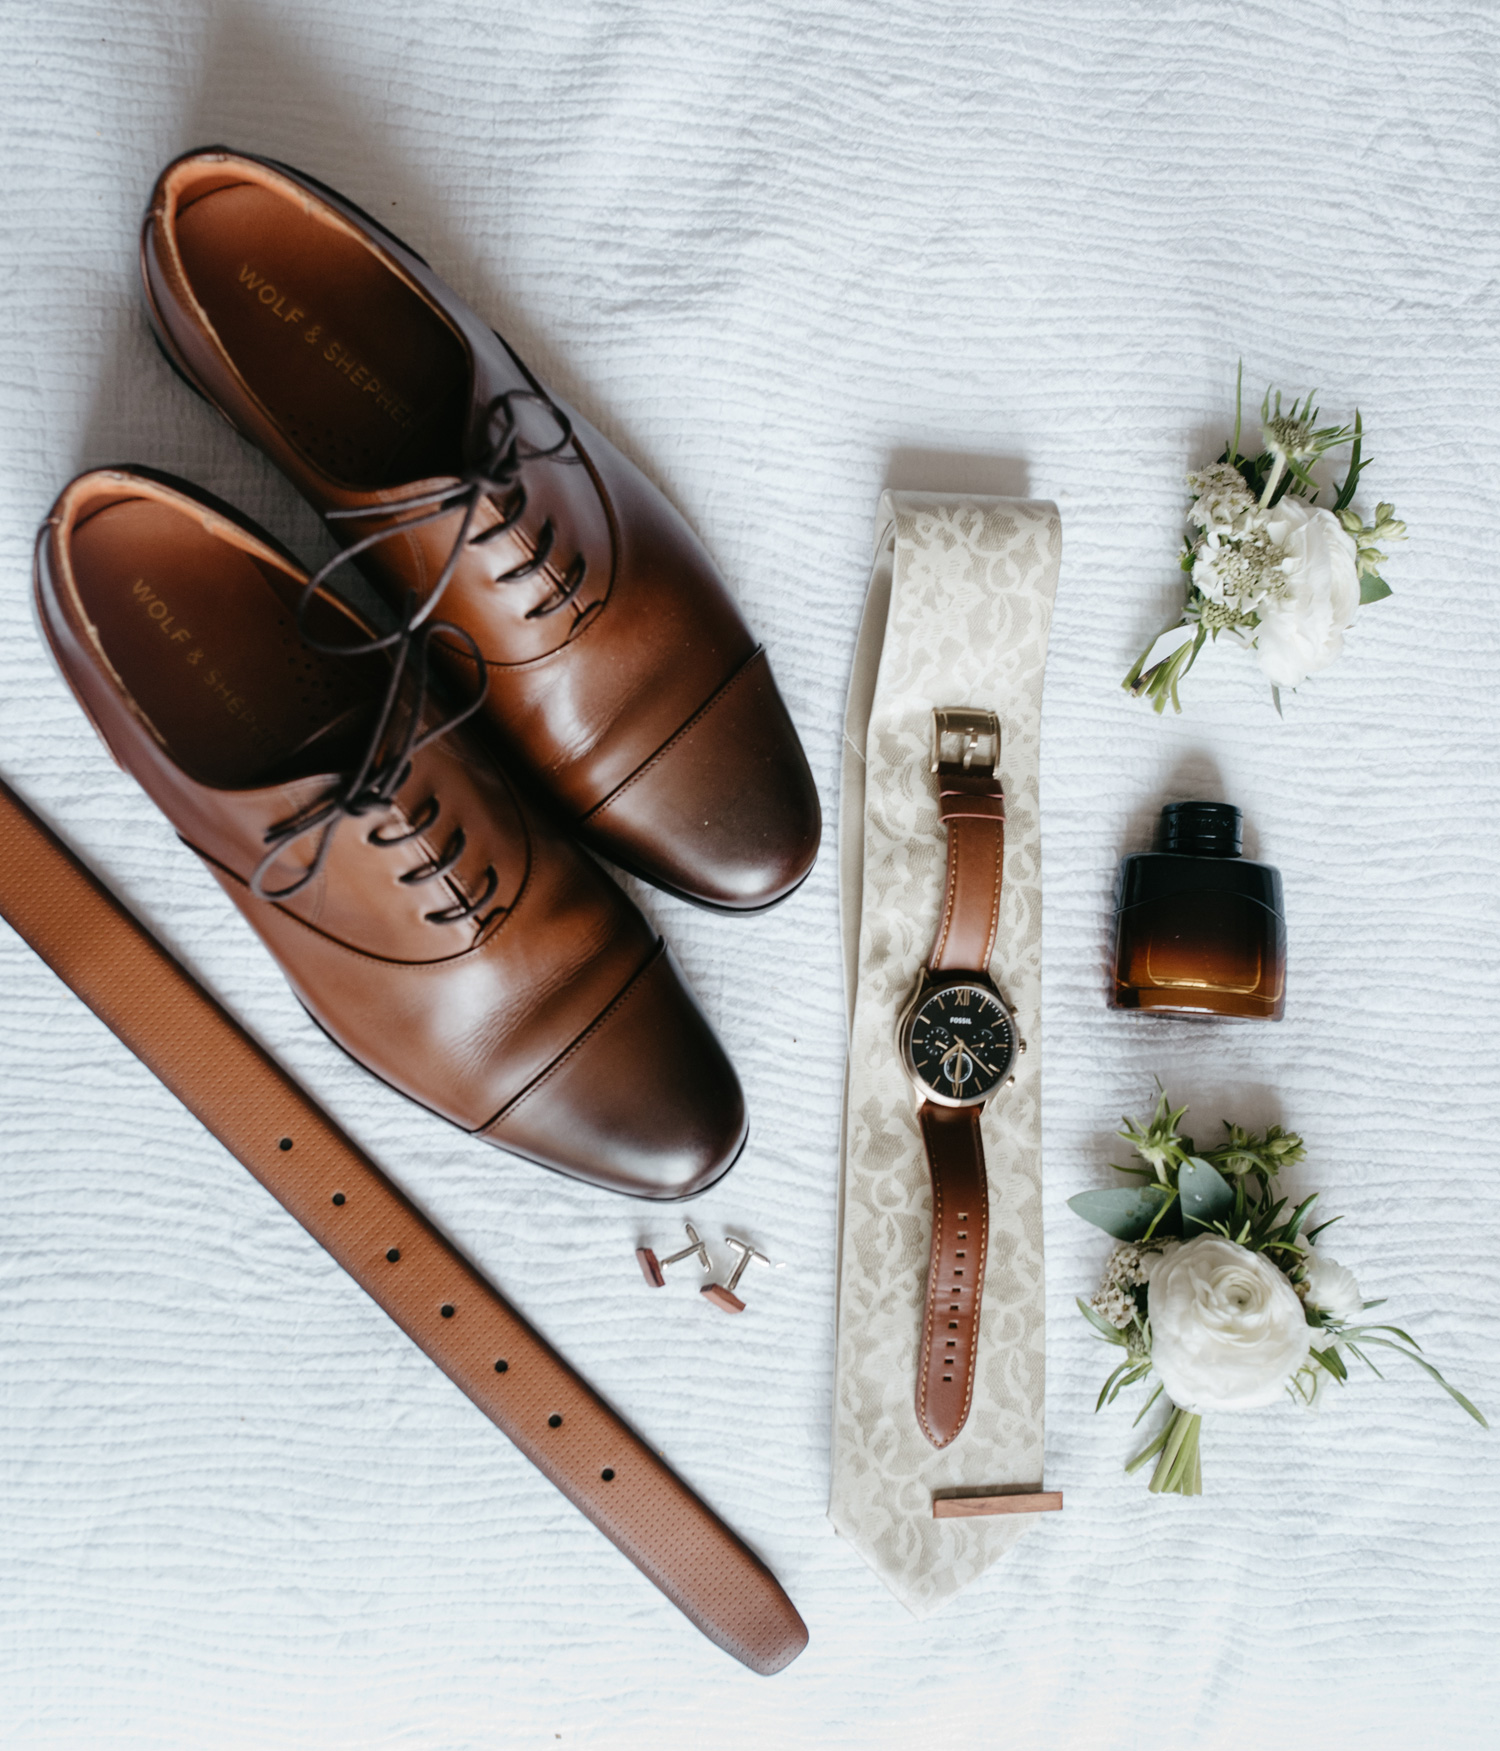 groom's wedding day details including shoes watch tie tie clip cufflinks belt and cologne